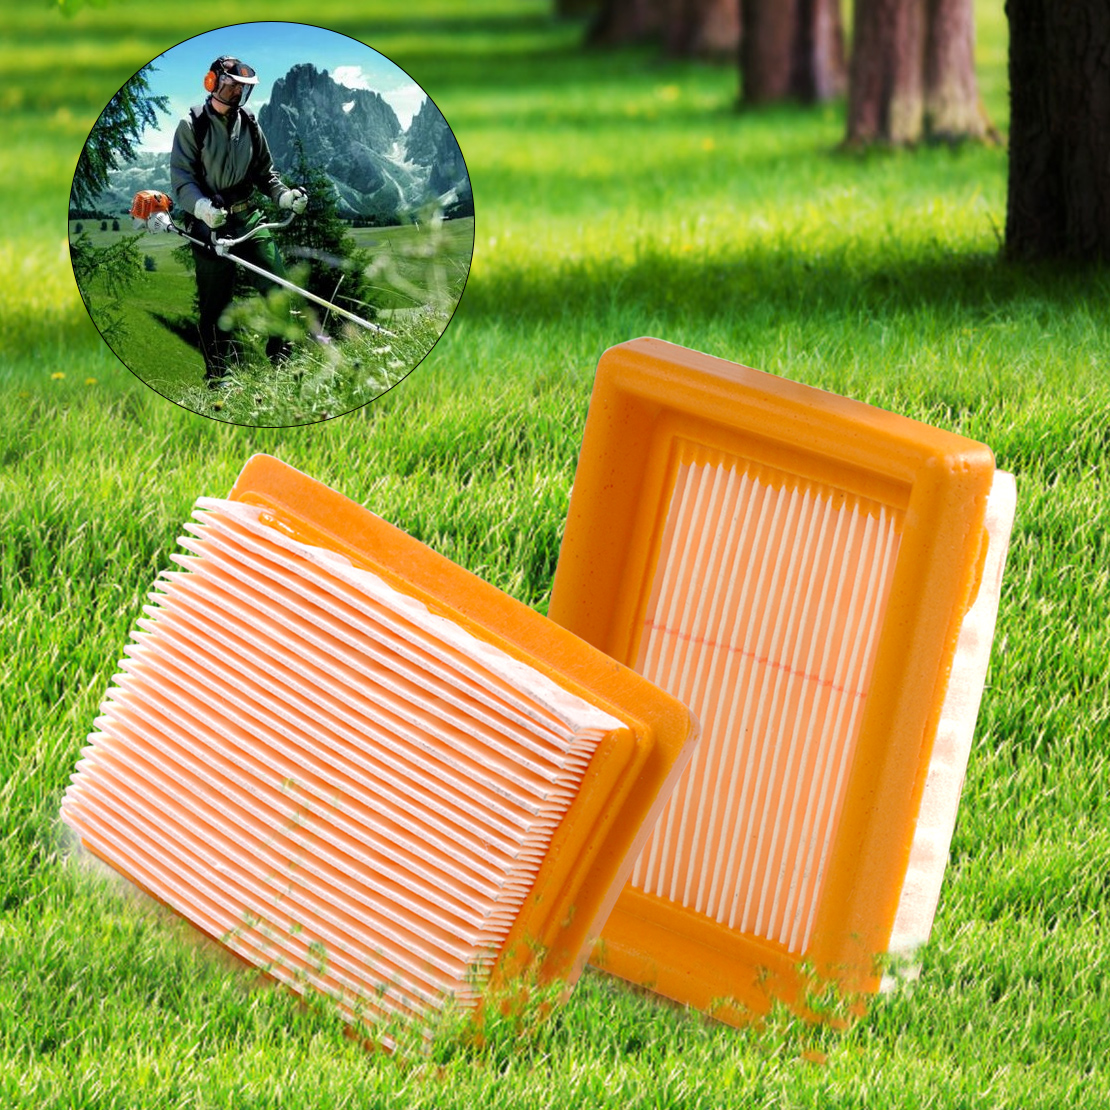 LETAOSK New Air Filter Replacement For STIHL Trimmer FS120 FS200 FS250 FS300 FS350 MM55(China)